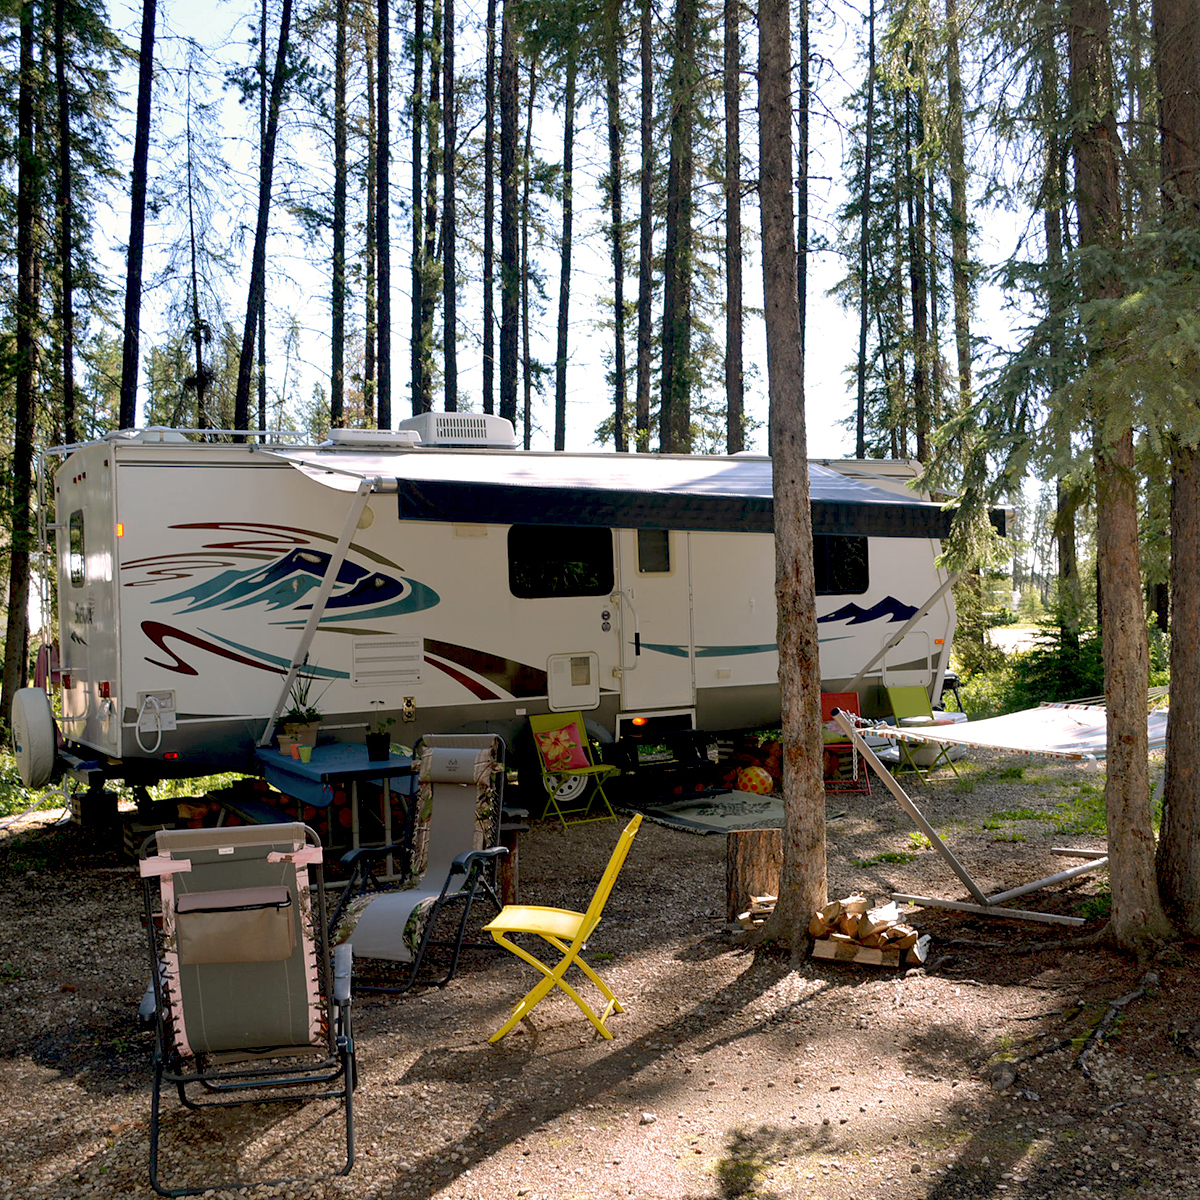 Affordable Full Service Campsites - Power, Water, Sewer - Whitecourt Lions Campground - Alberta